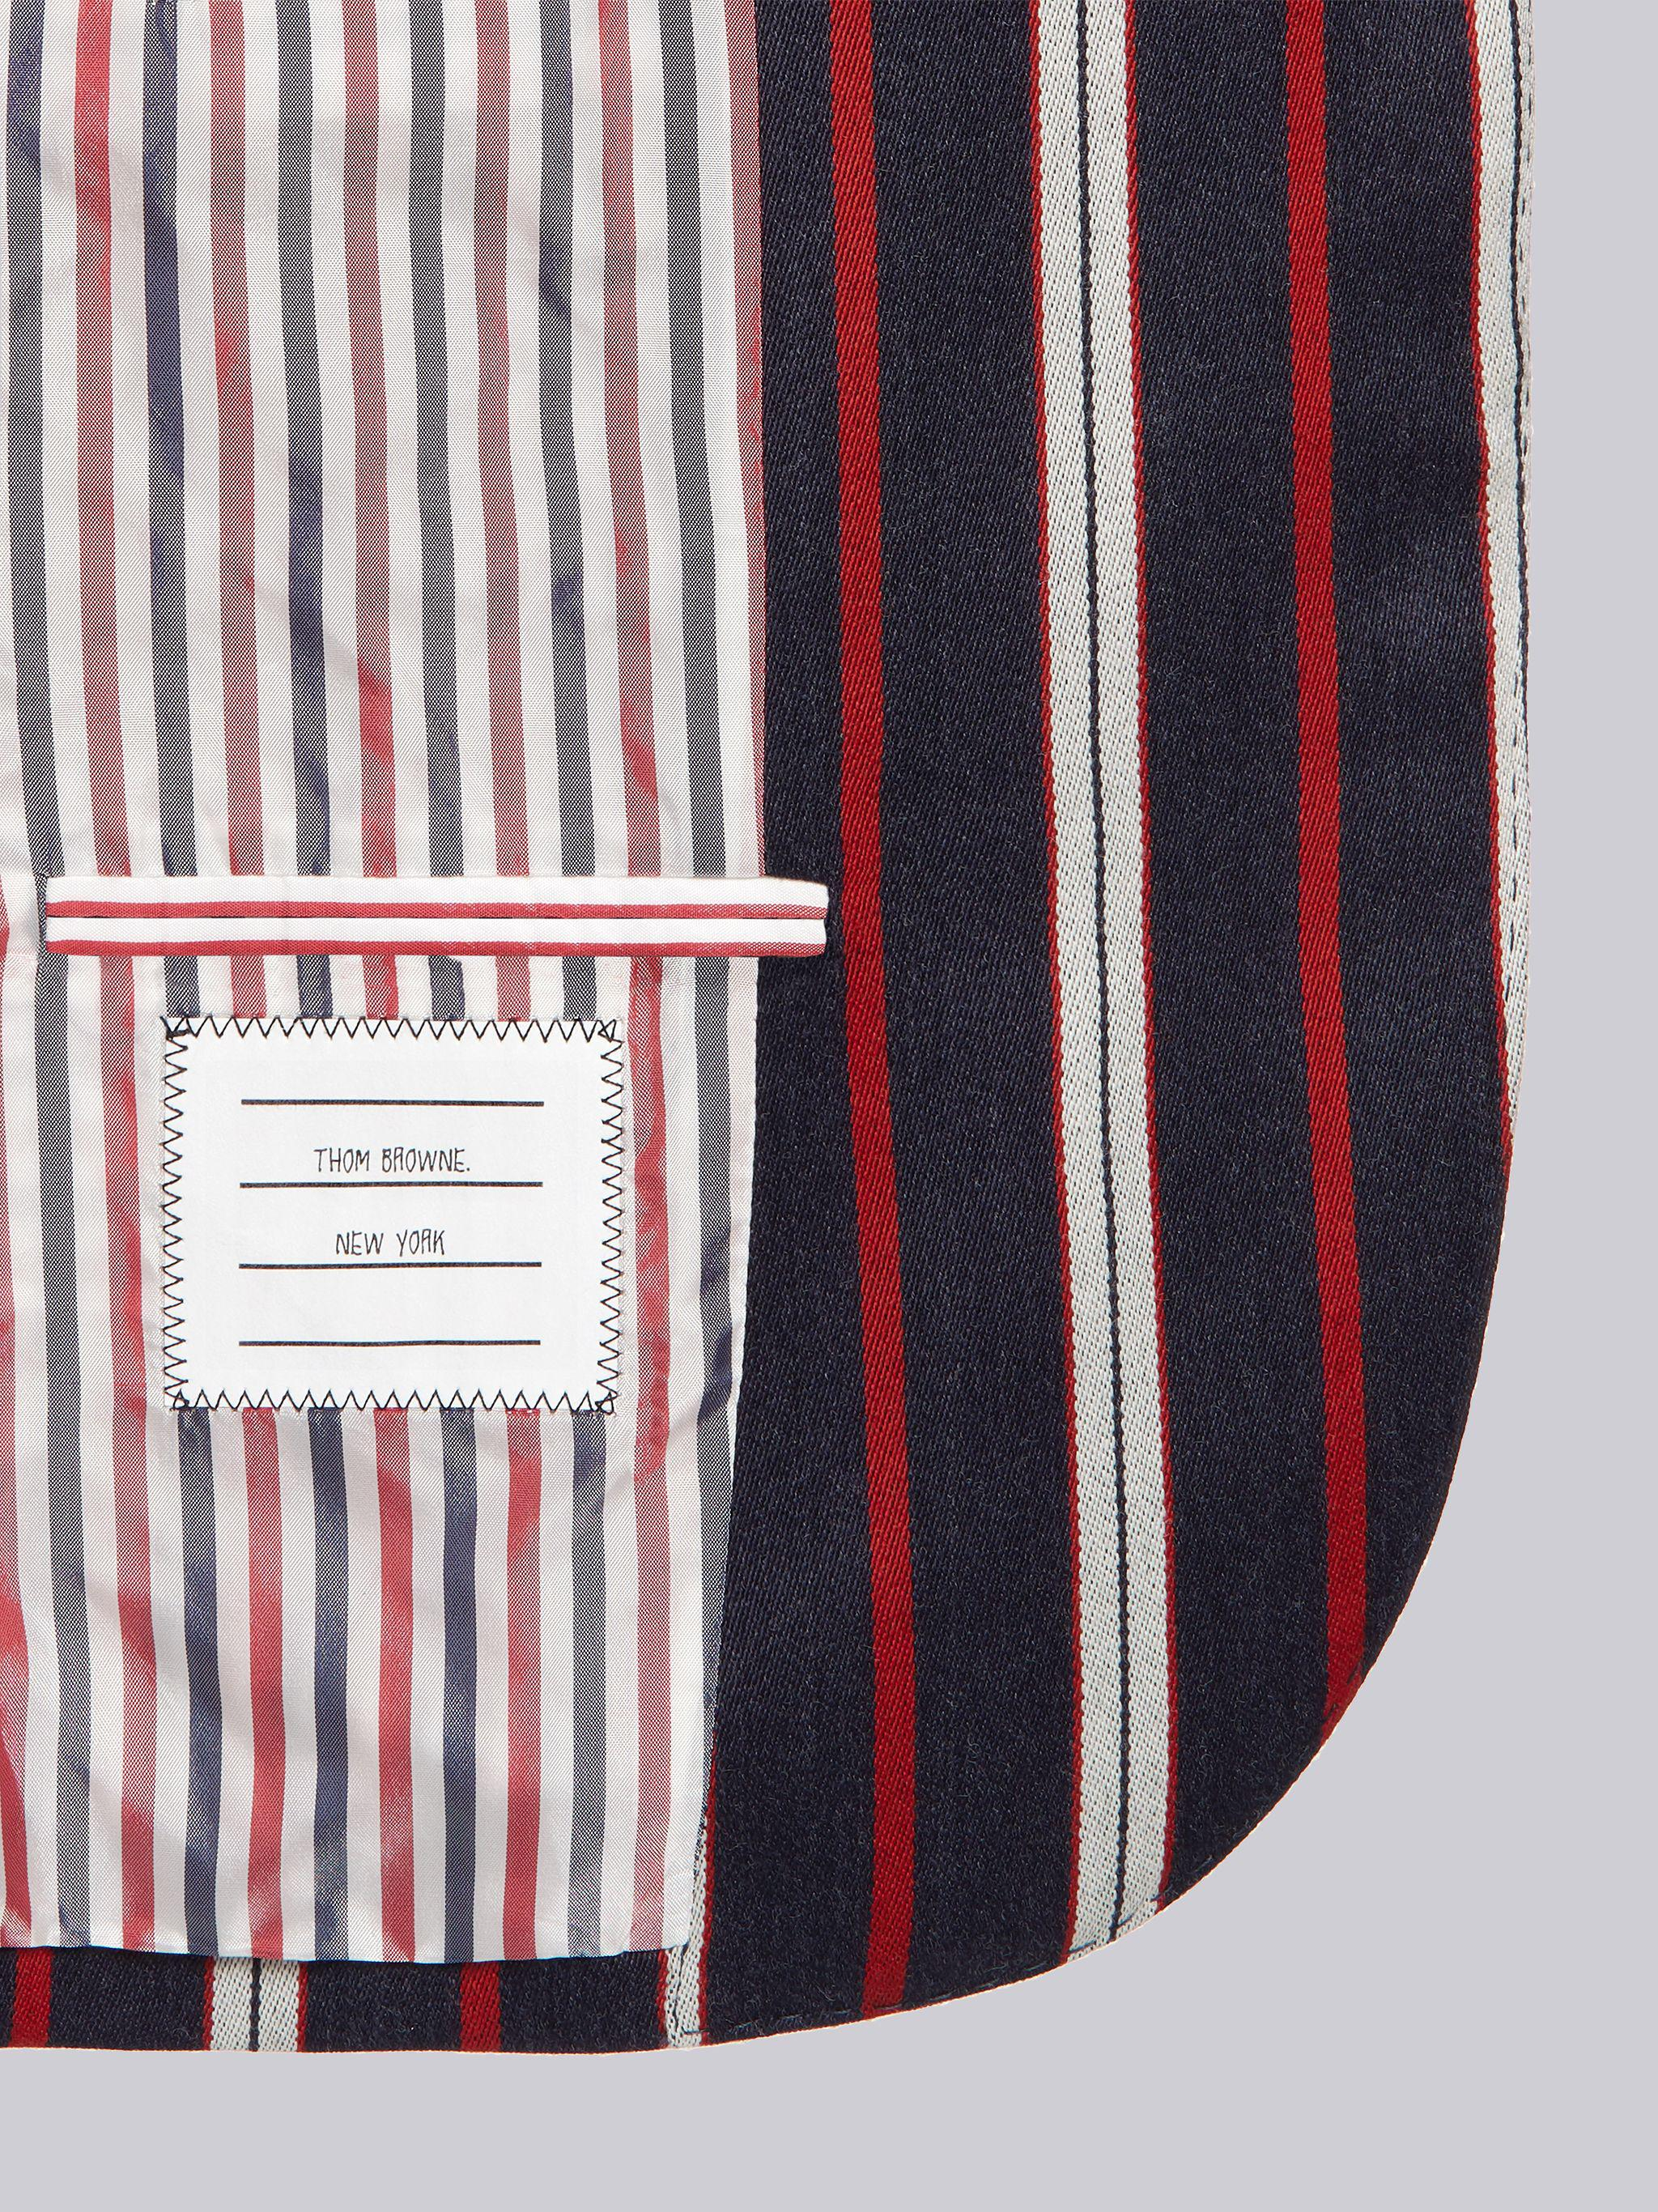 Multi-Color Wool Cotton Suiting Variegated Rep Stripe High Armhole Jacket 5